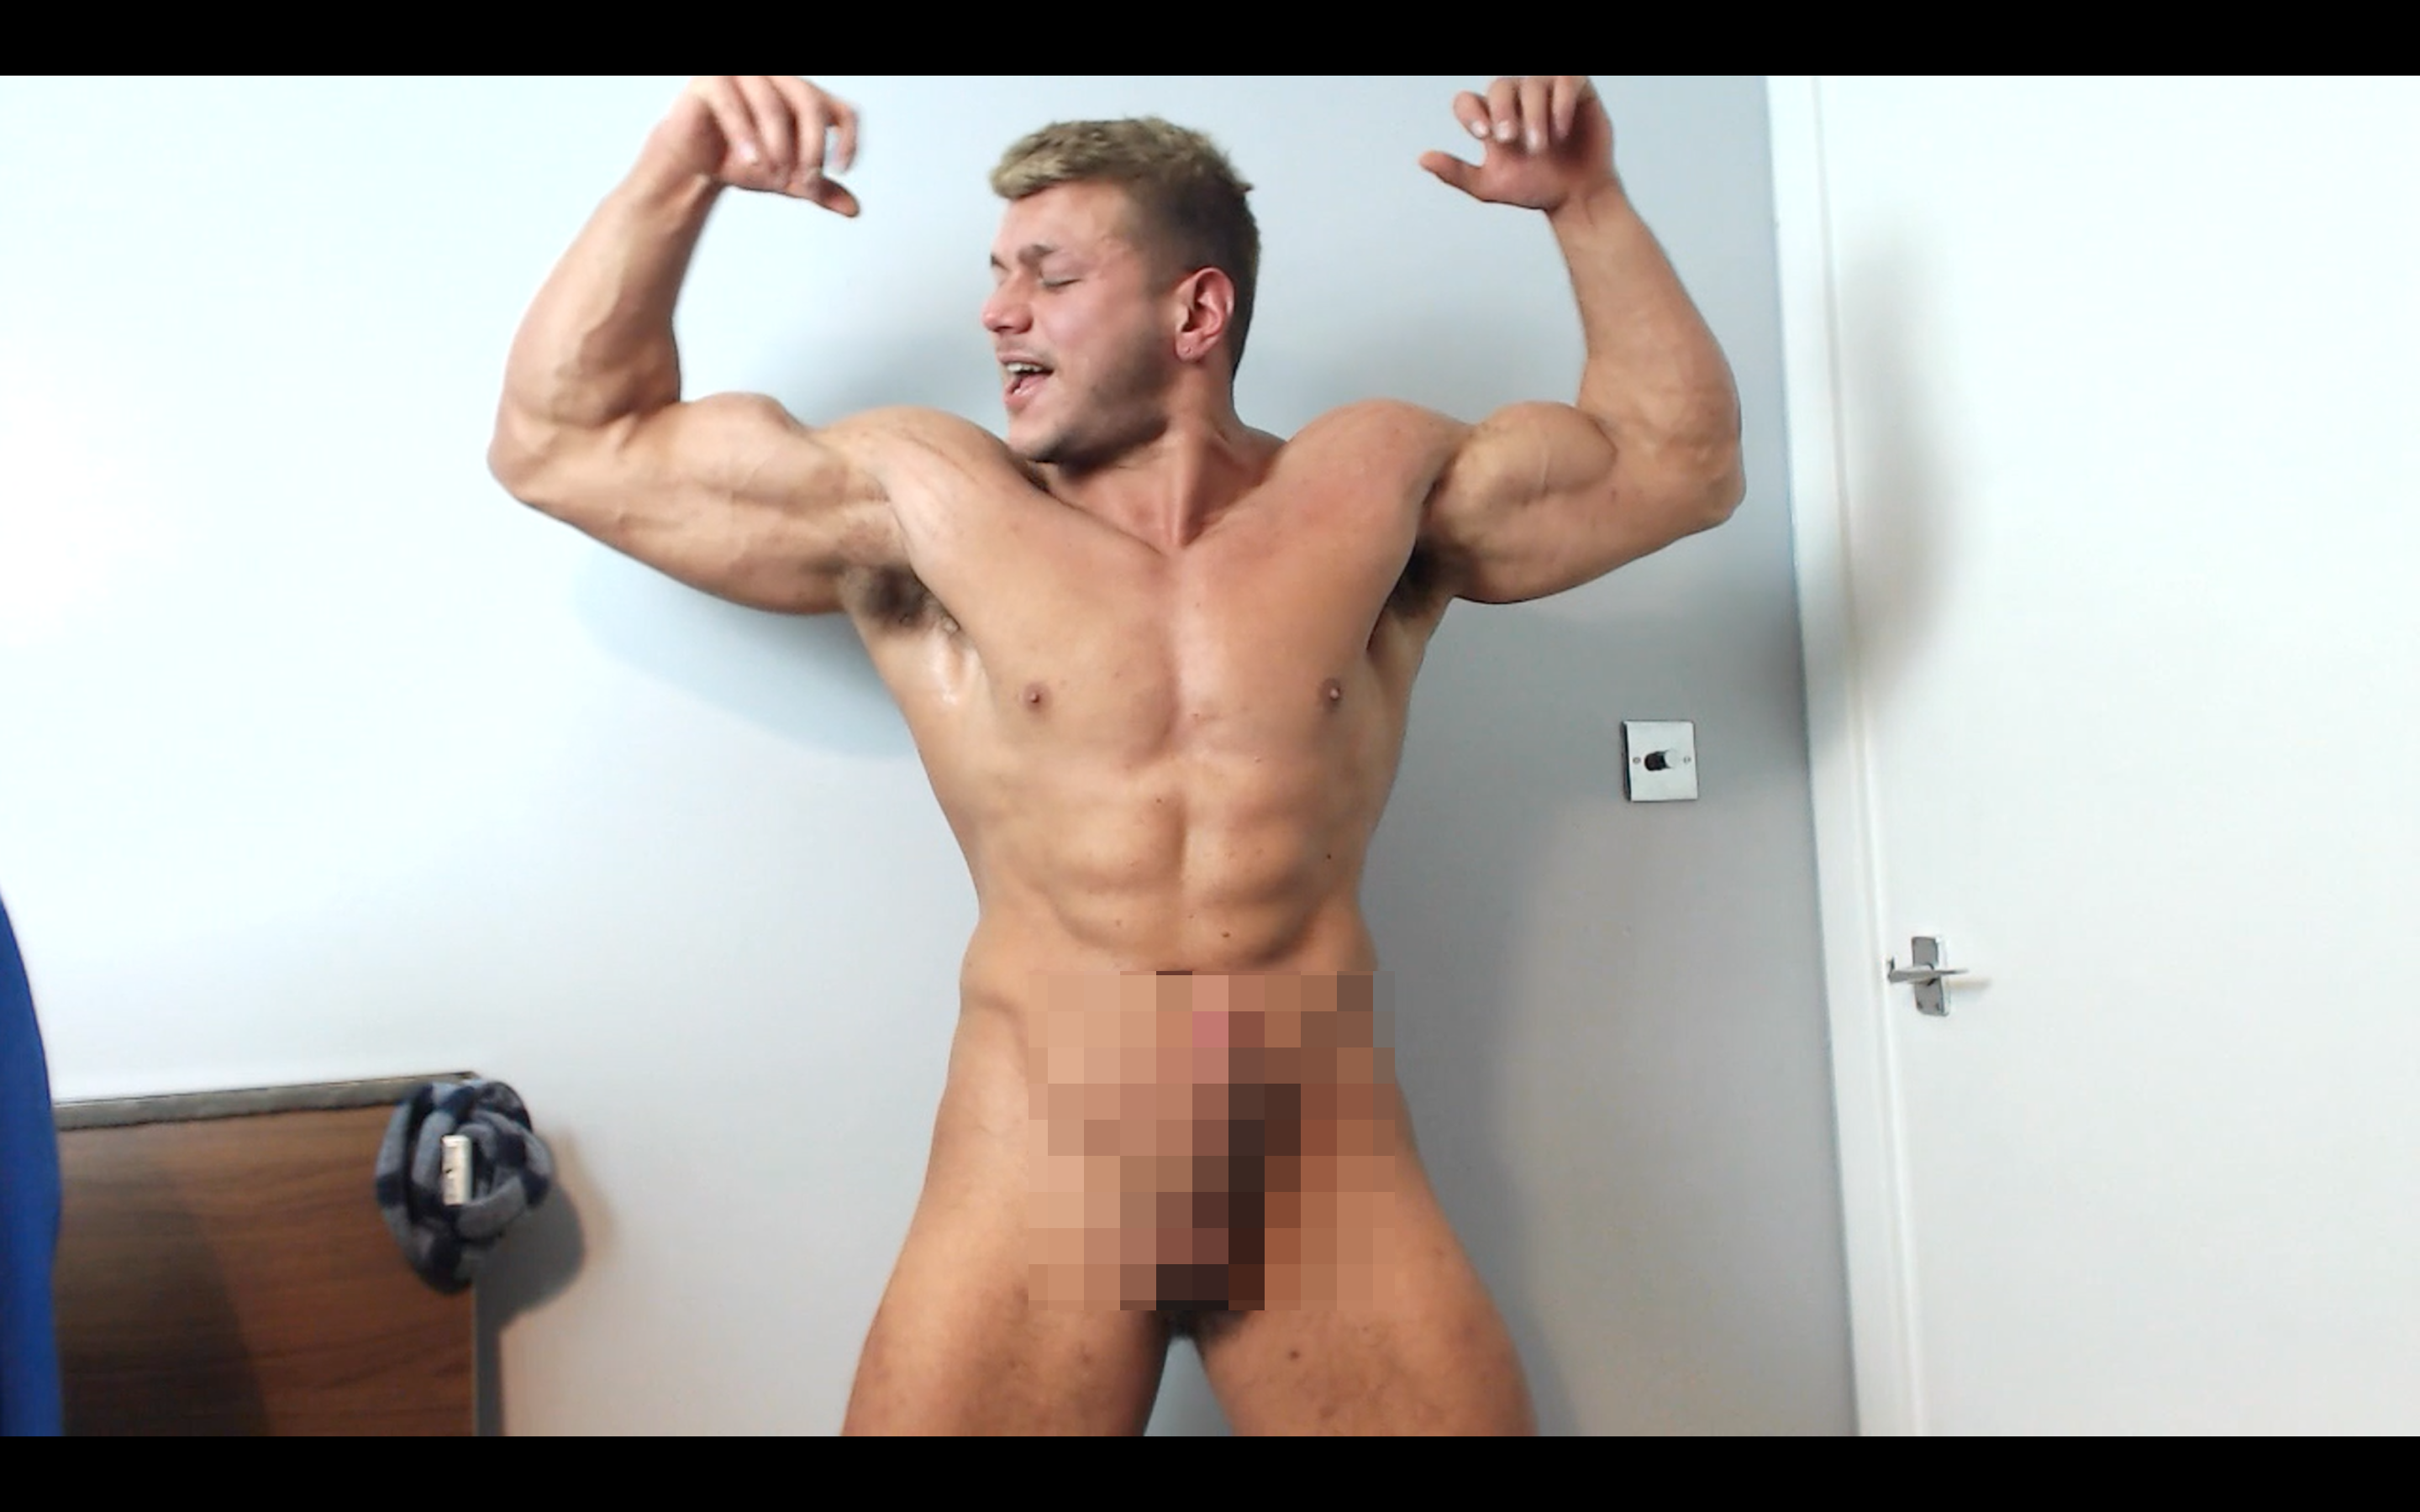 Muscle Ripped Shredded Hunk Pecs Shaving Shirt Suit Armpit Fetish Oil Domination Masturbation Bodybuilder Gay Video